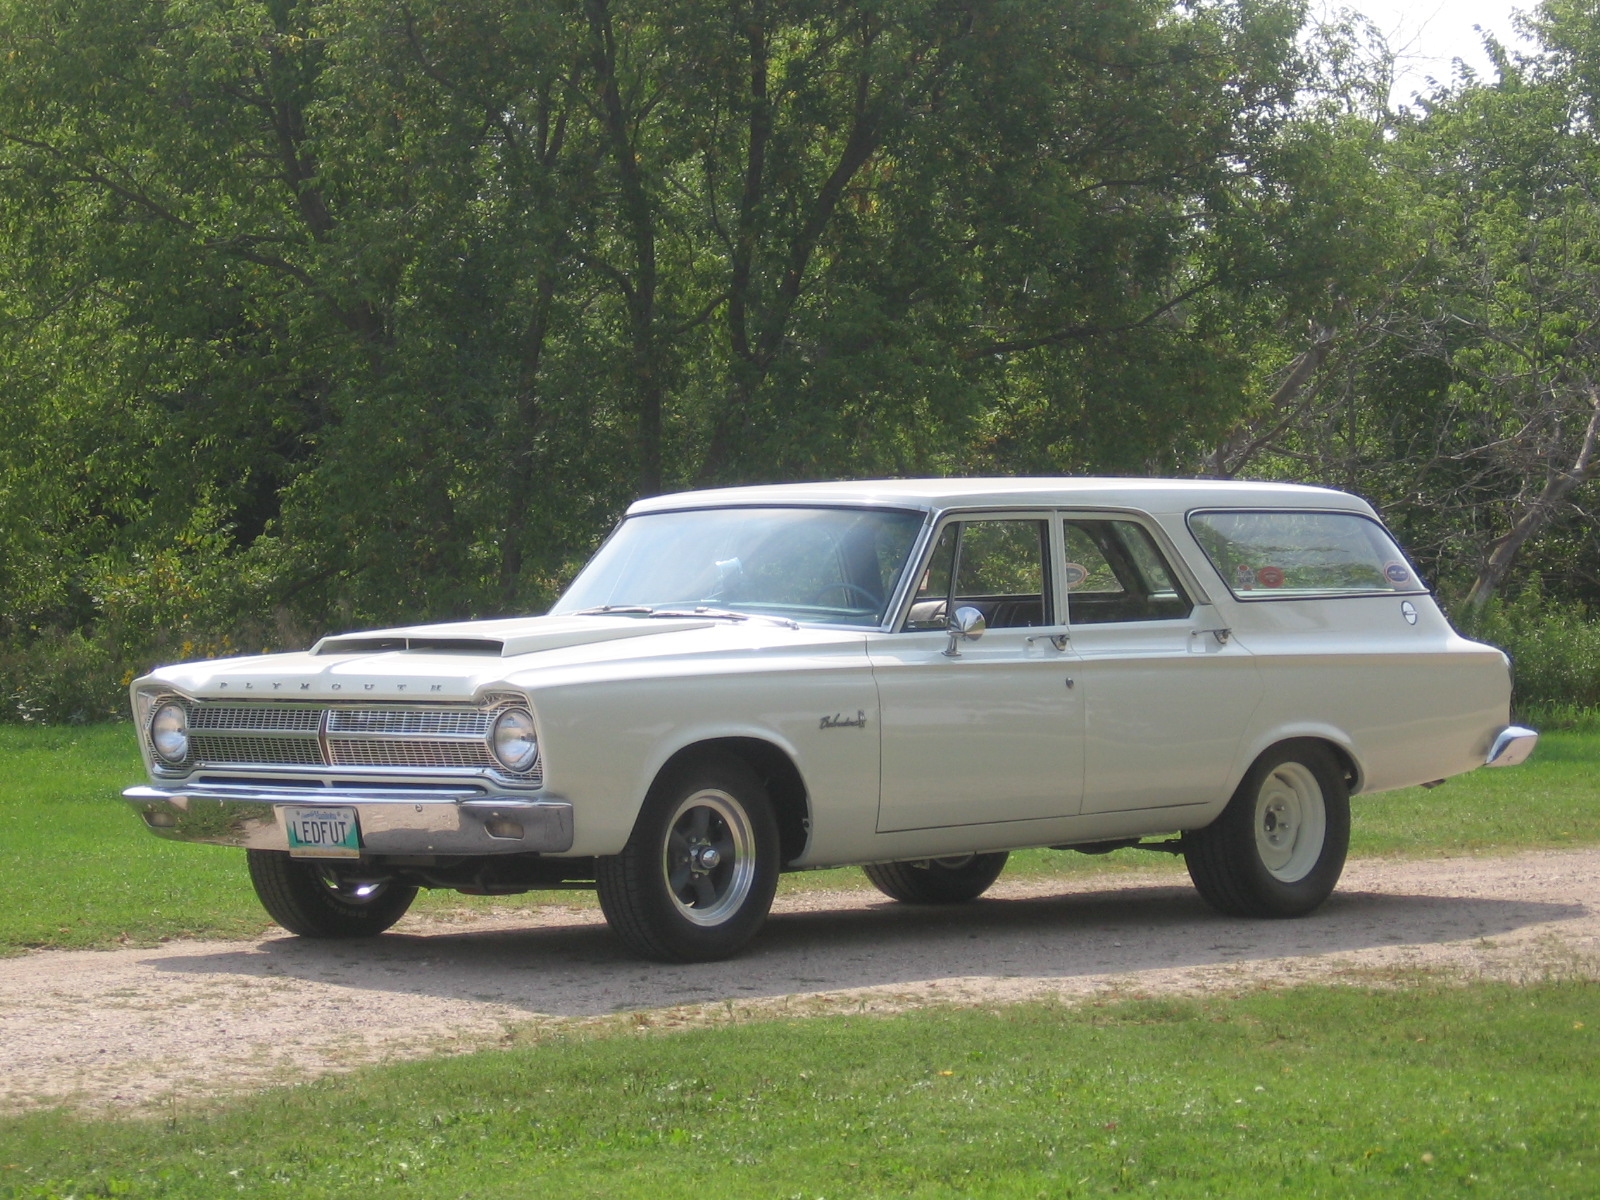 Station Wagon of the Day - 1965 Plymouth Belvedere I | Station ...